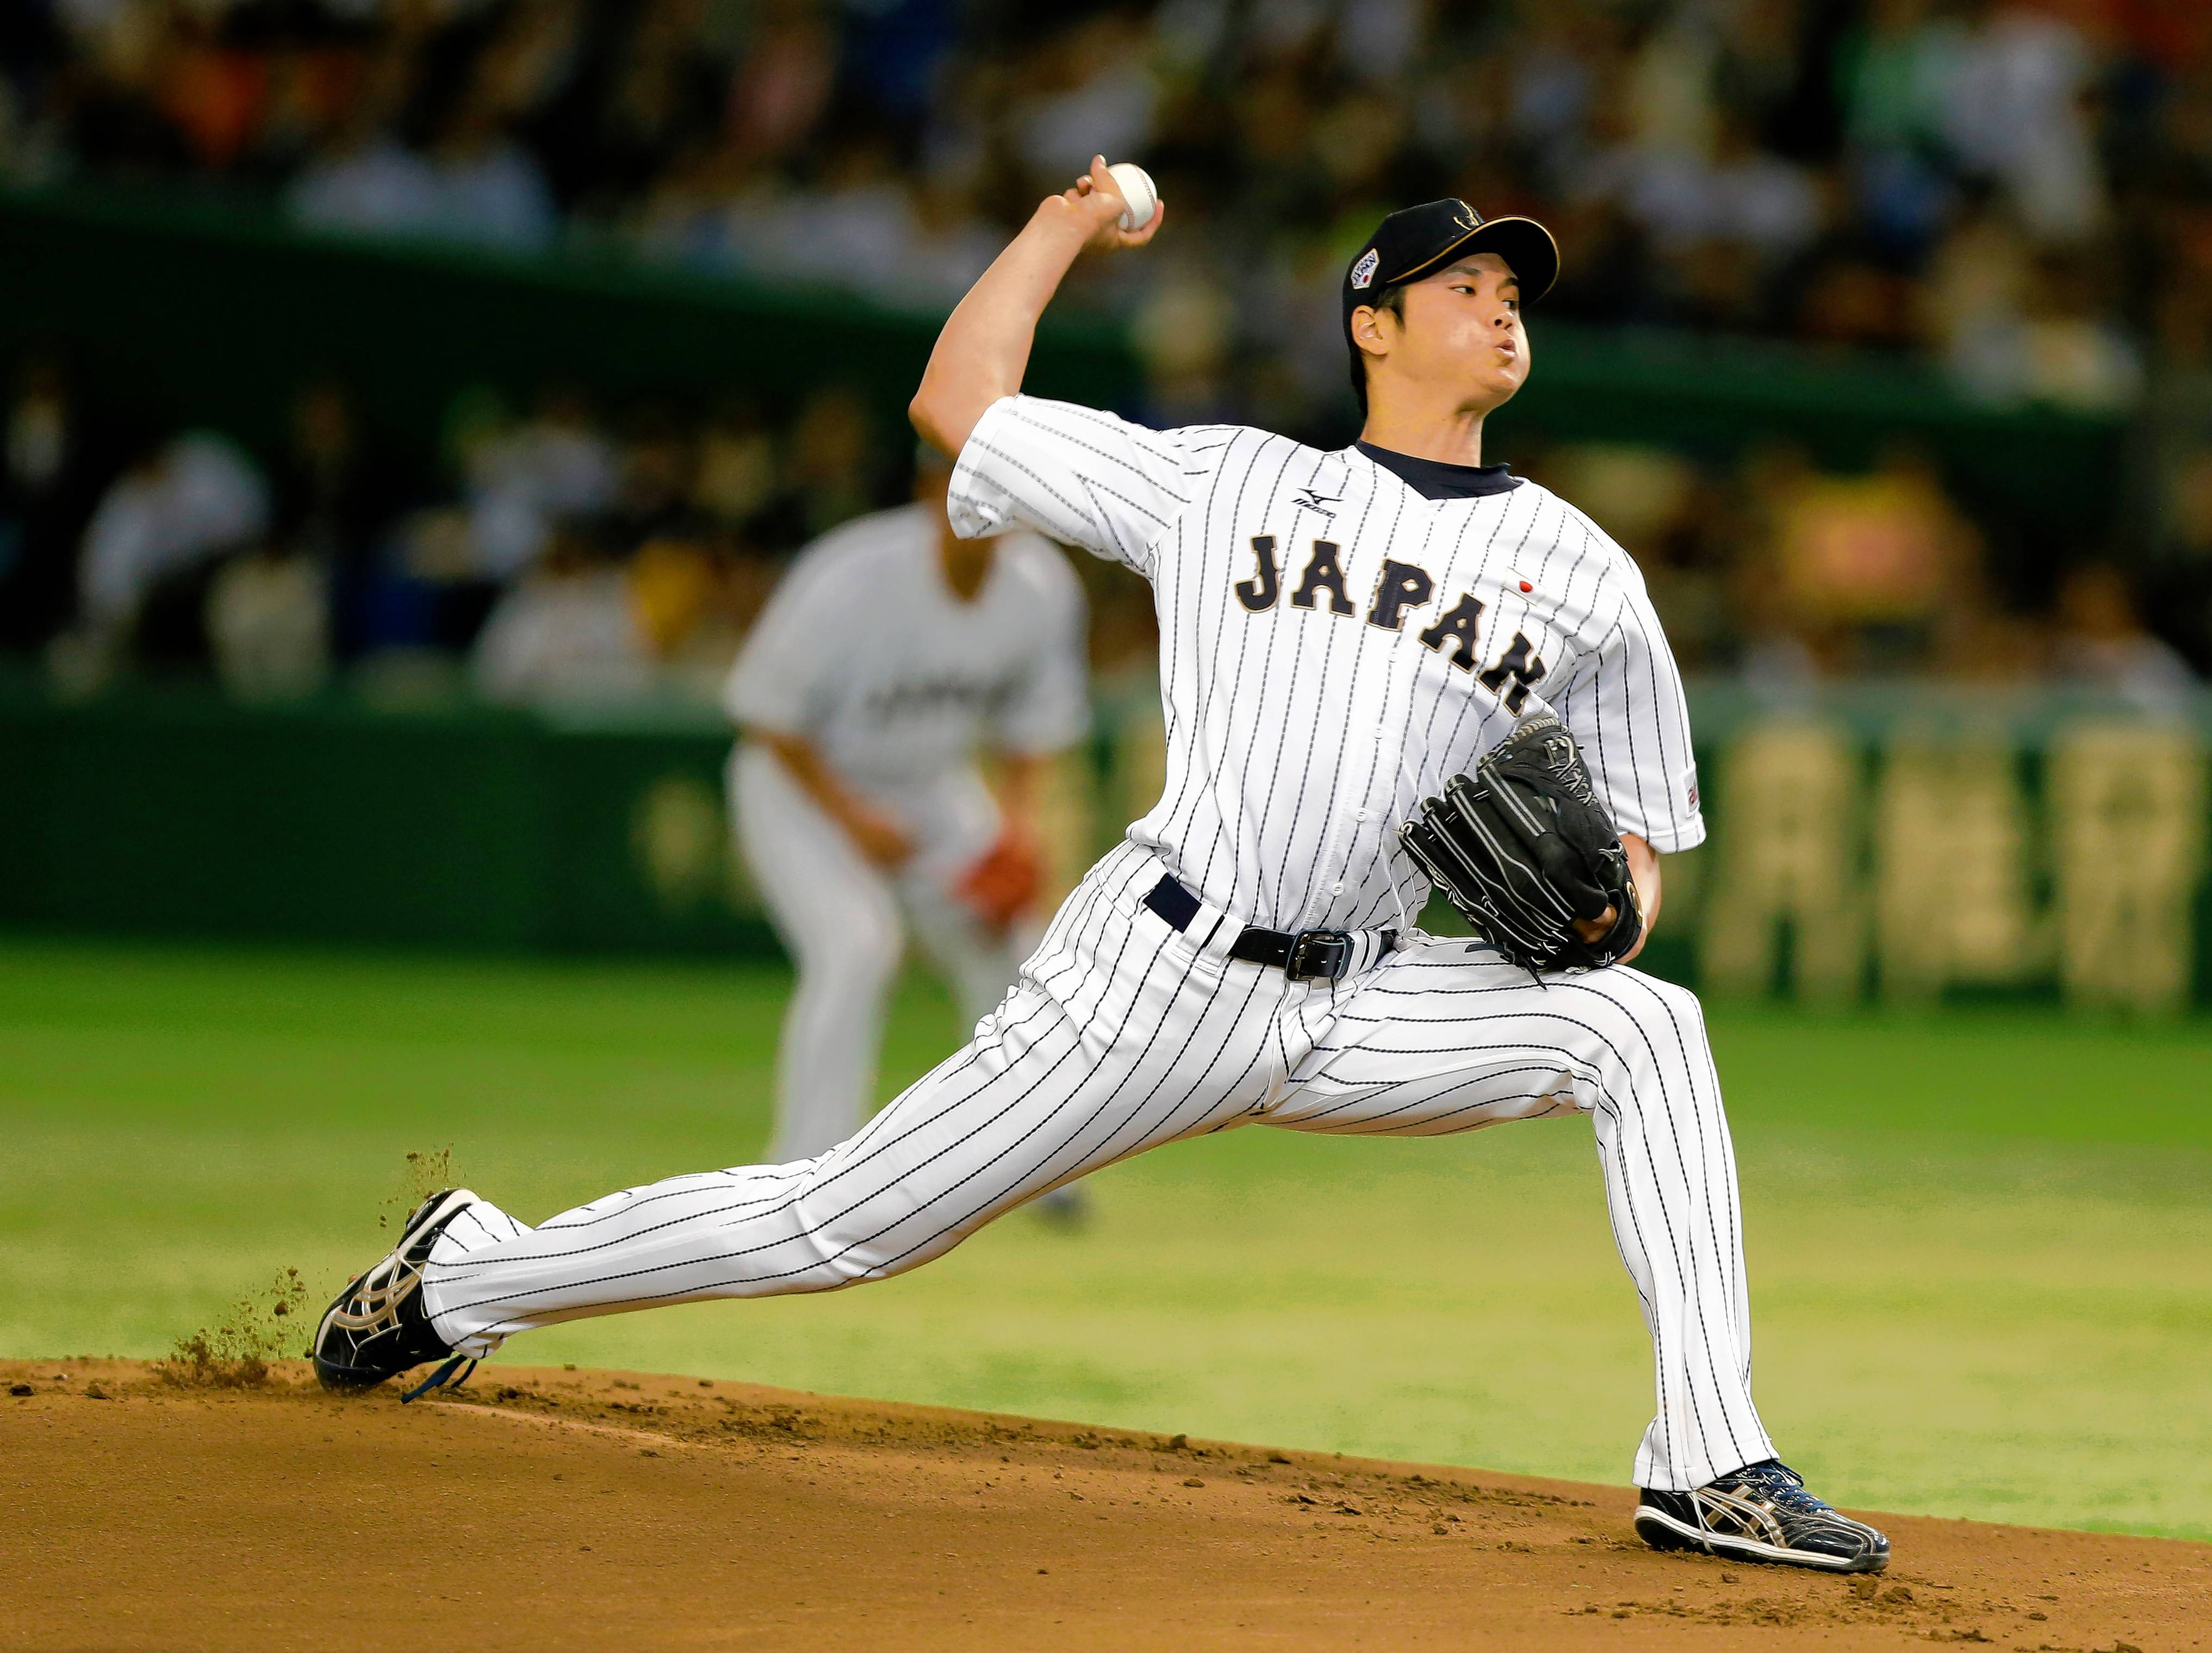 Chicago Cubs a finalist for Japanese star Ohtani